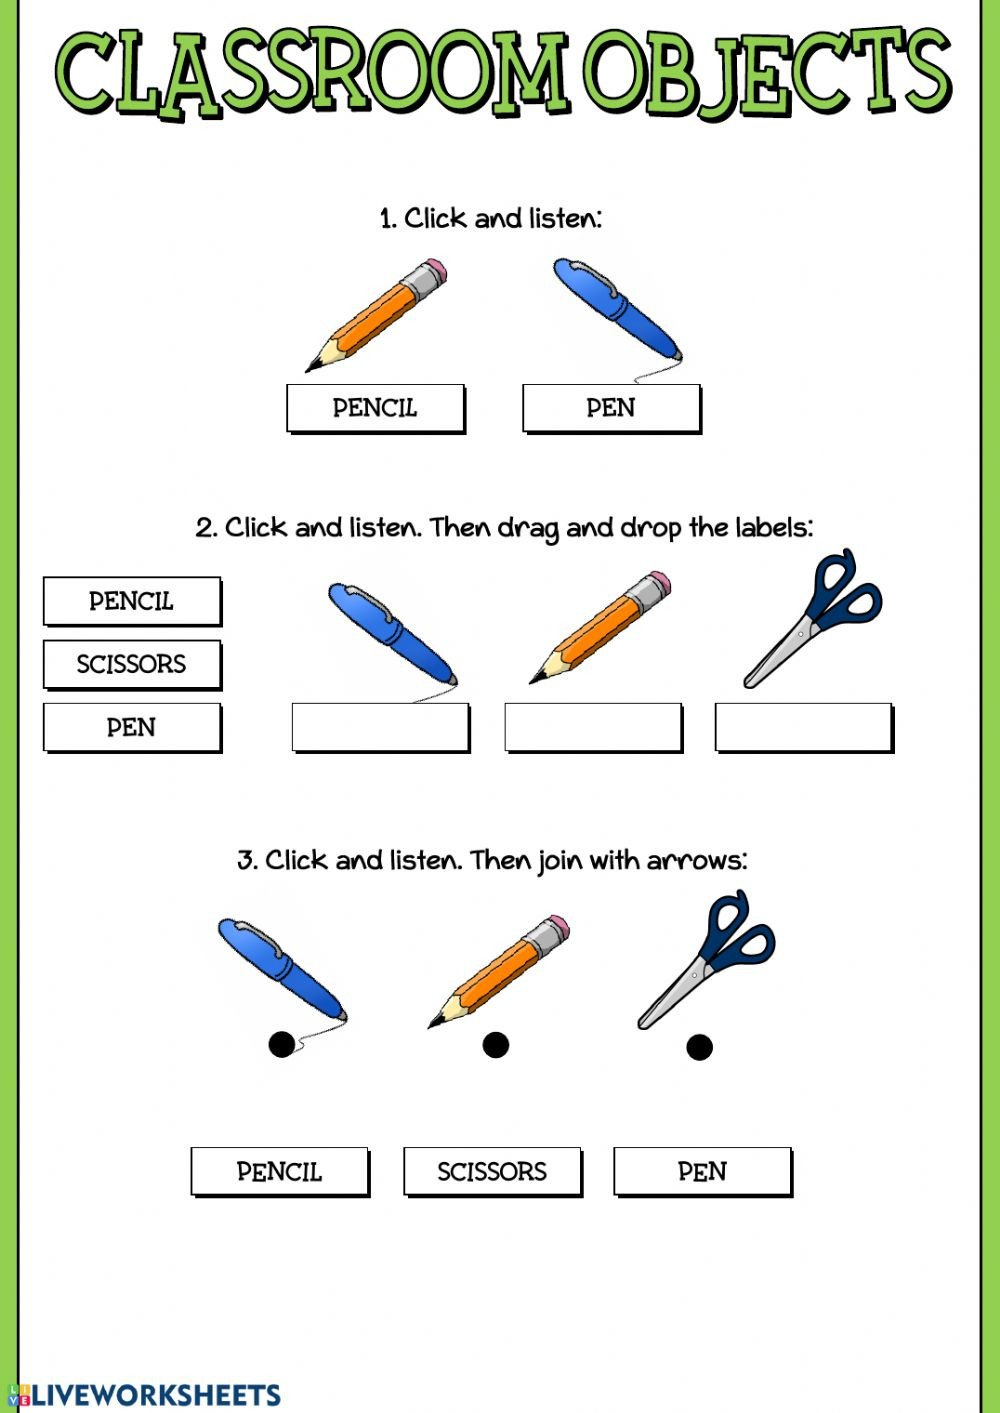 Classroom Objects Worksheets Pdf Classroom Objects Online and Pdf Worksheet